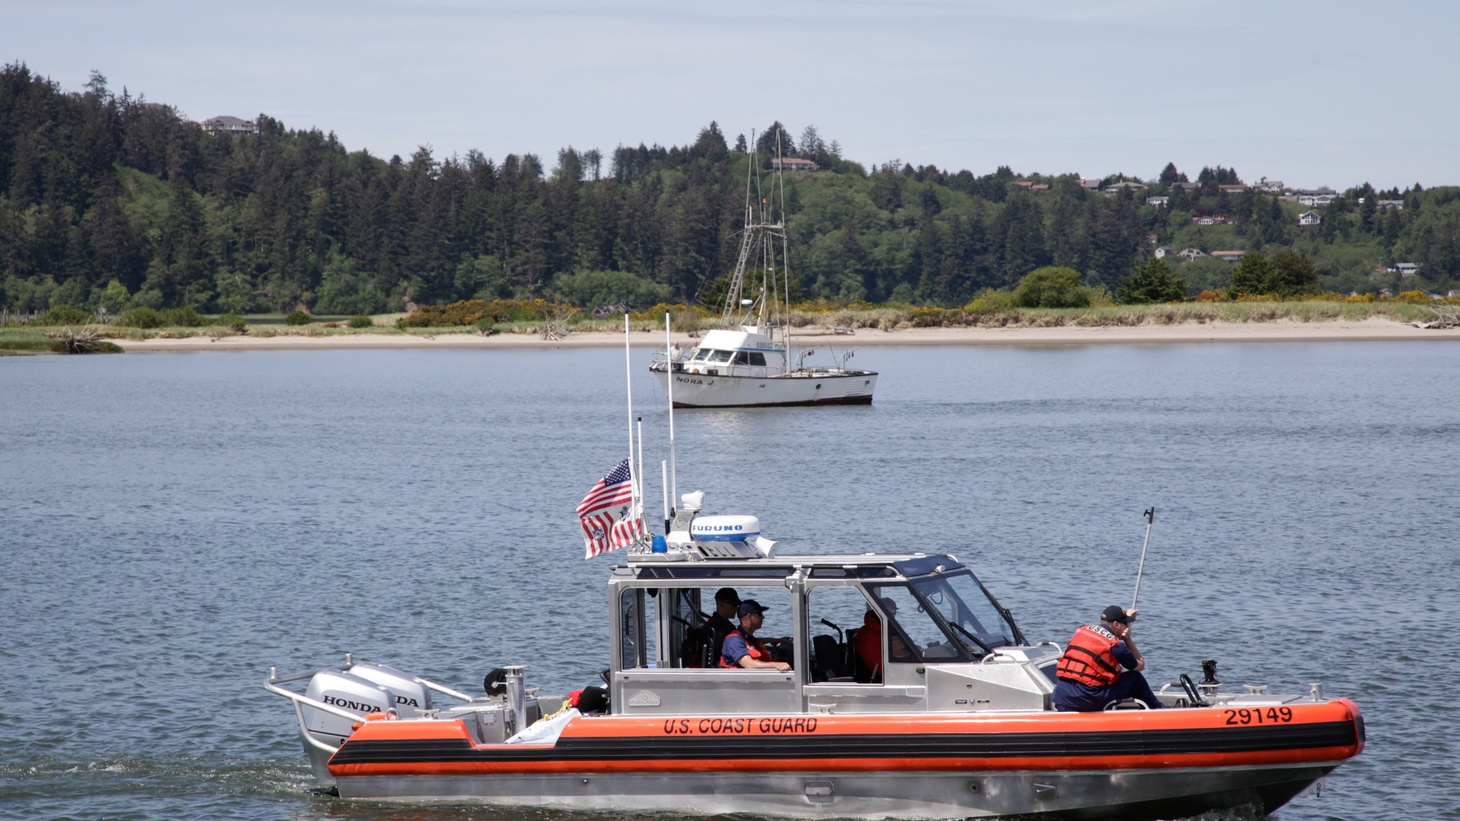 Who's really benefiting from the GI Bill? Why does the U.S. Coast Guard have some explaining to do? How much arsenic in our water is actually safe? There's always more to the story.